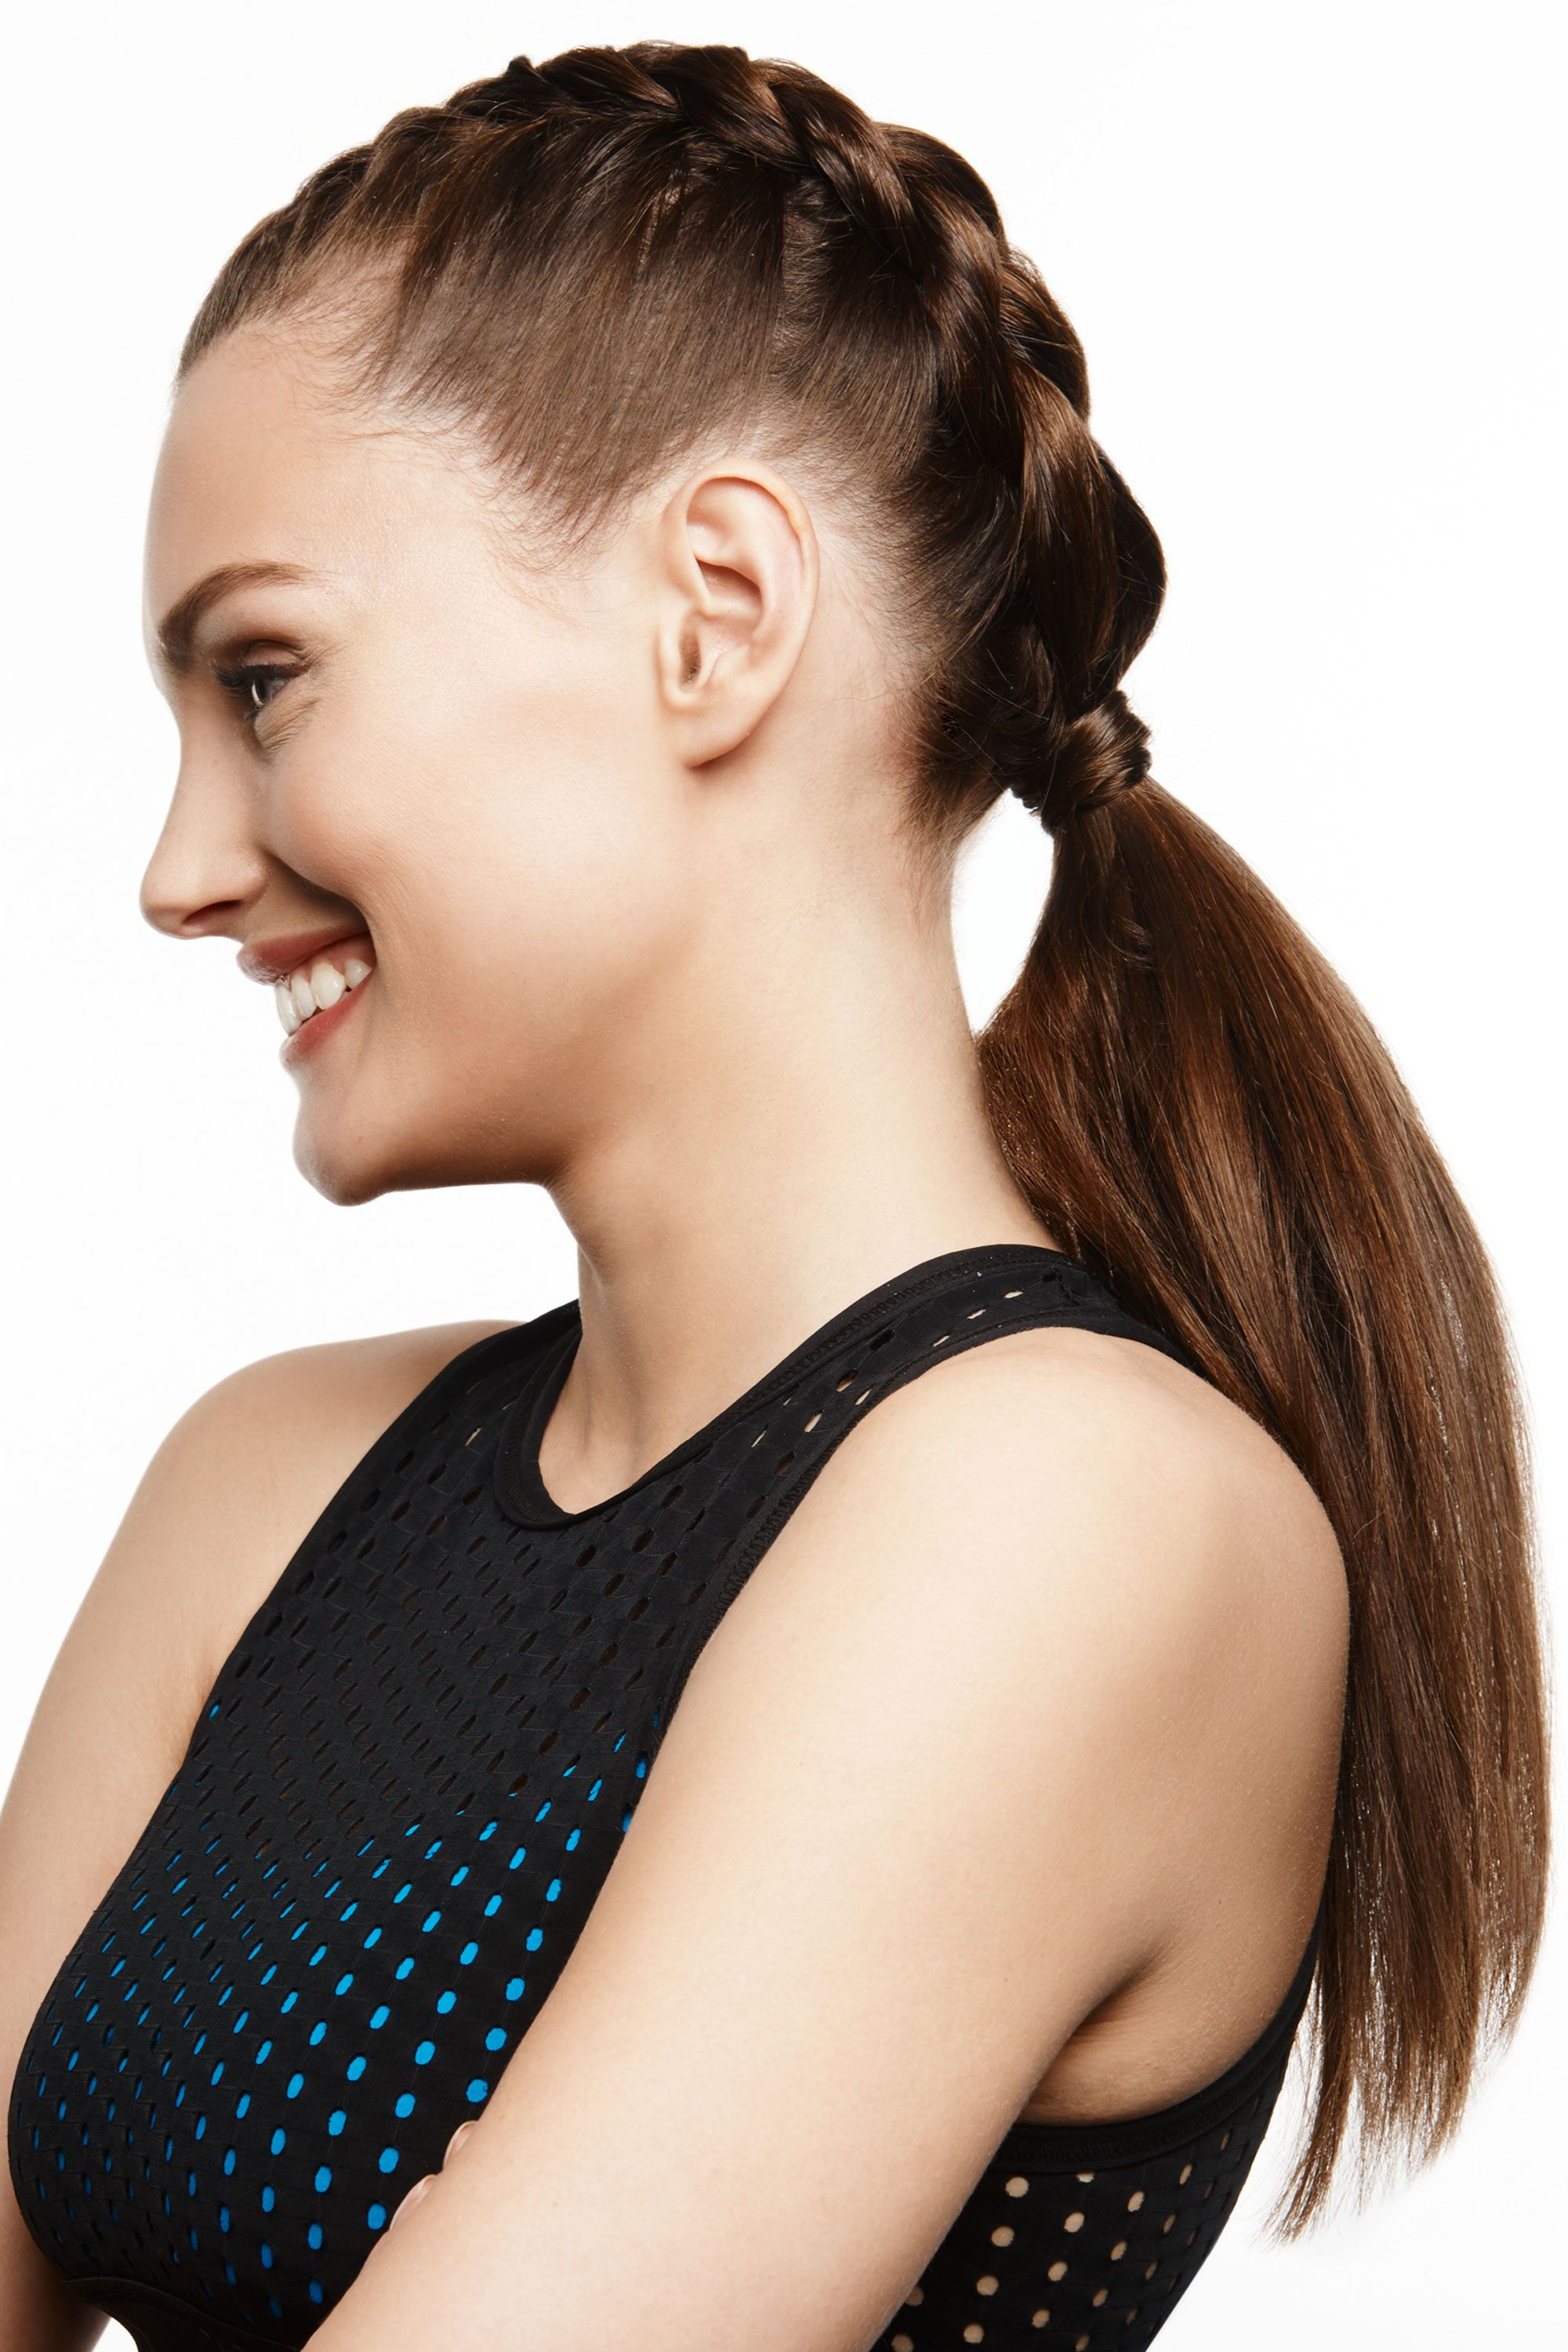 "<p><strong></strong>With this elegant take on the boxing braid, you can sprint on the treadmill or take on a punching bag without worrying about your hair getting in the way. Create a center part and do two French braids (one on either side or opt for a side part and braid only one side) leading into a low ponytail. Then slightly tease the pony for a voluminous, windblown effect and smooth strands with <a href=""http://bit.ly/1qV6WR2"" target=""_blank"">Nexxus New York Salon Care Encapsulate Sérum</a>. ""I love this look,"" says Lona Vigi, a celebrity stylist for Nexxus New York Salon Care. ""It's super chic yet youthful and works at the gym as well as lunch with the girls,"" she says.<br>